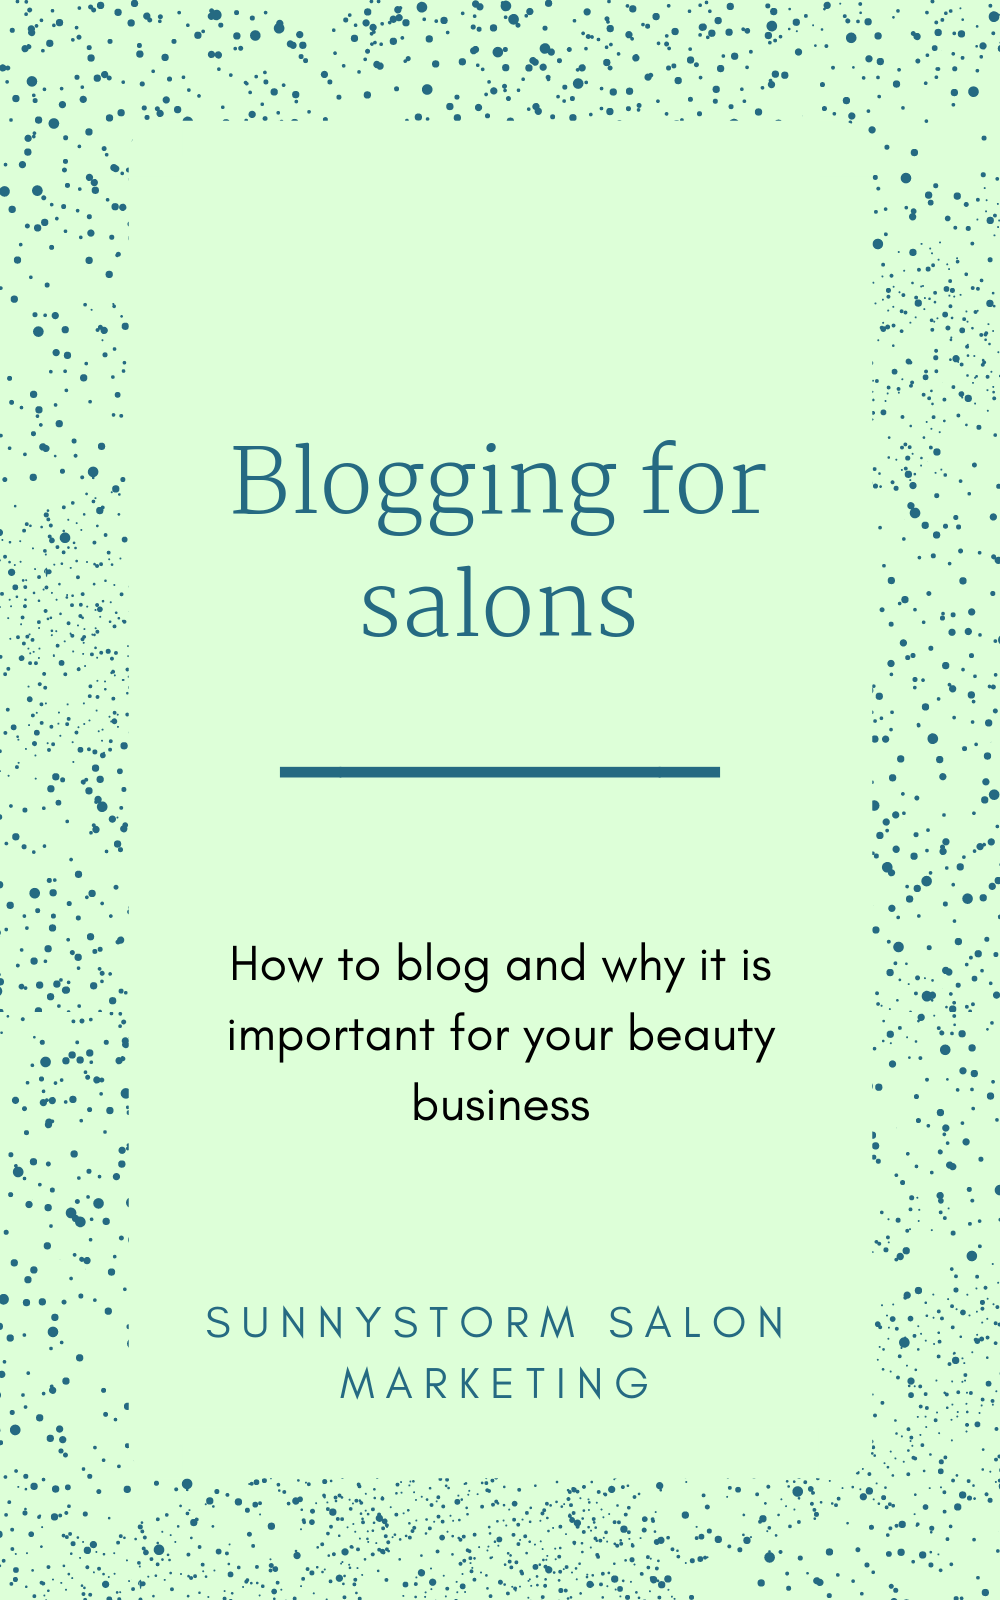 All about blogging for salons + 18 ideas for articles your clients